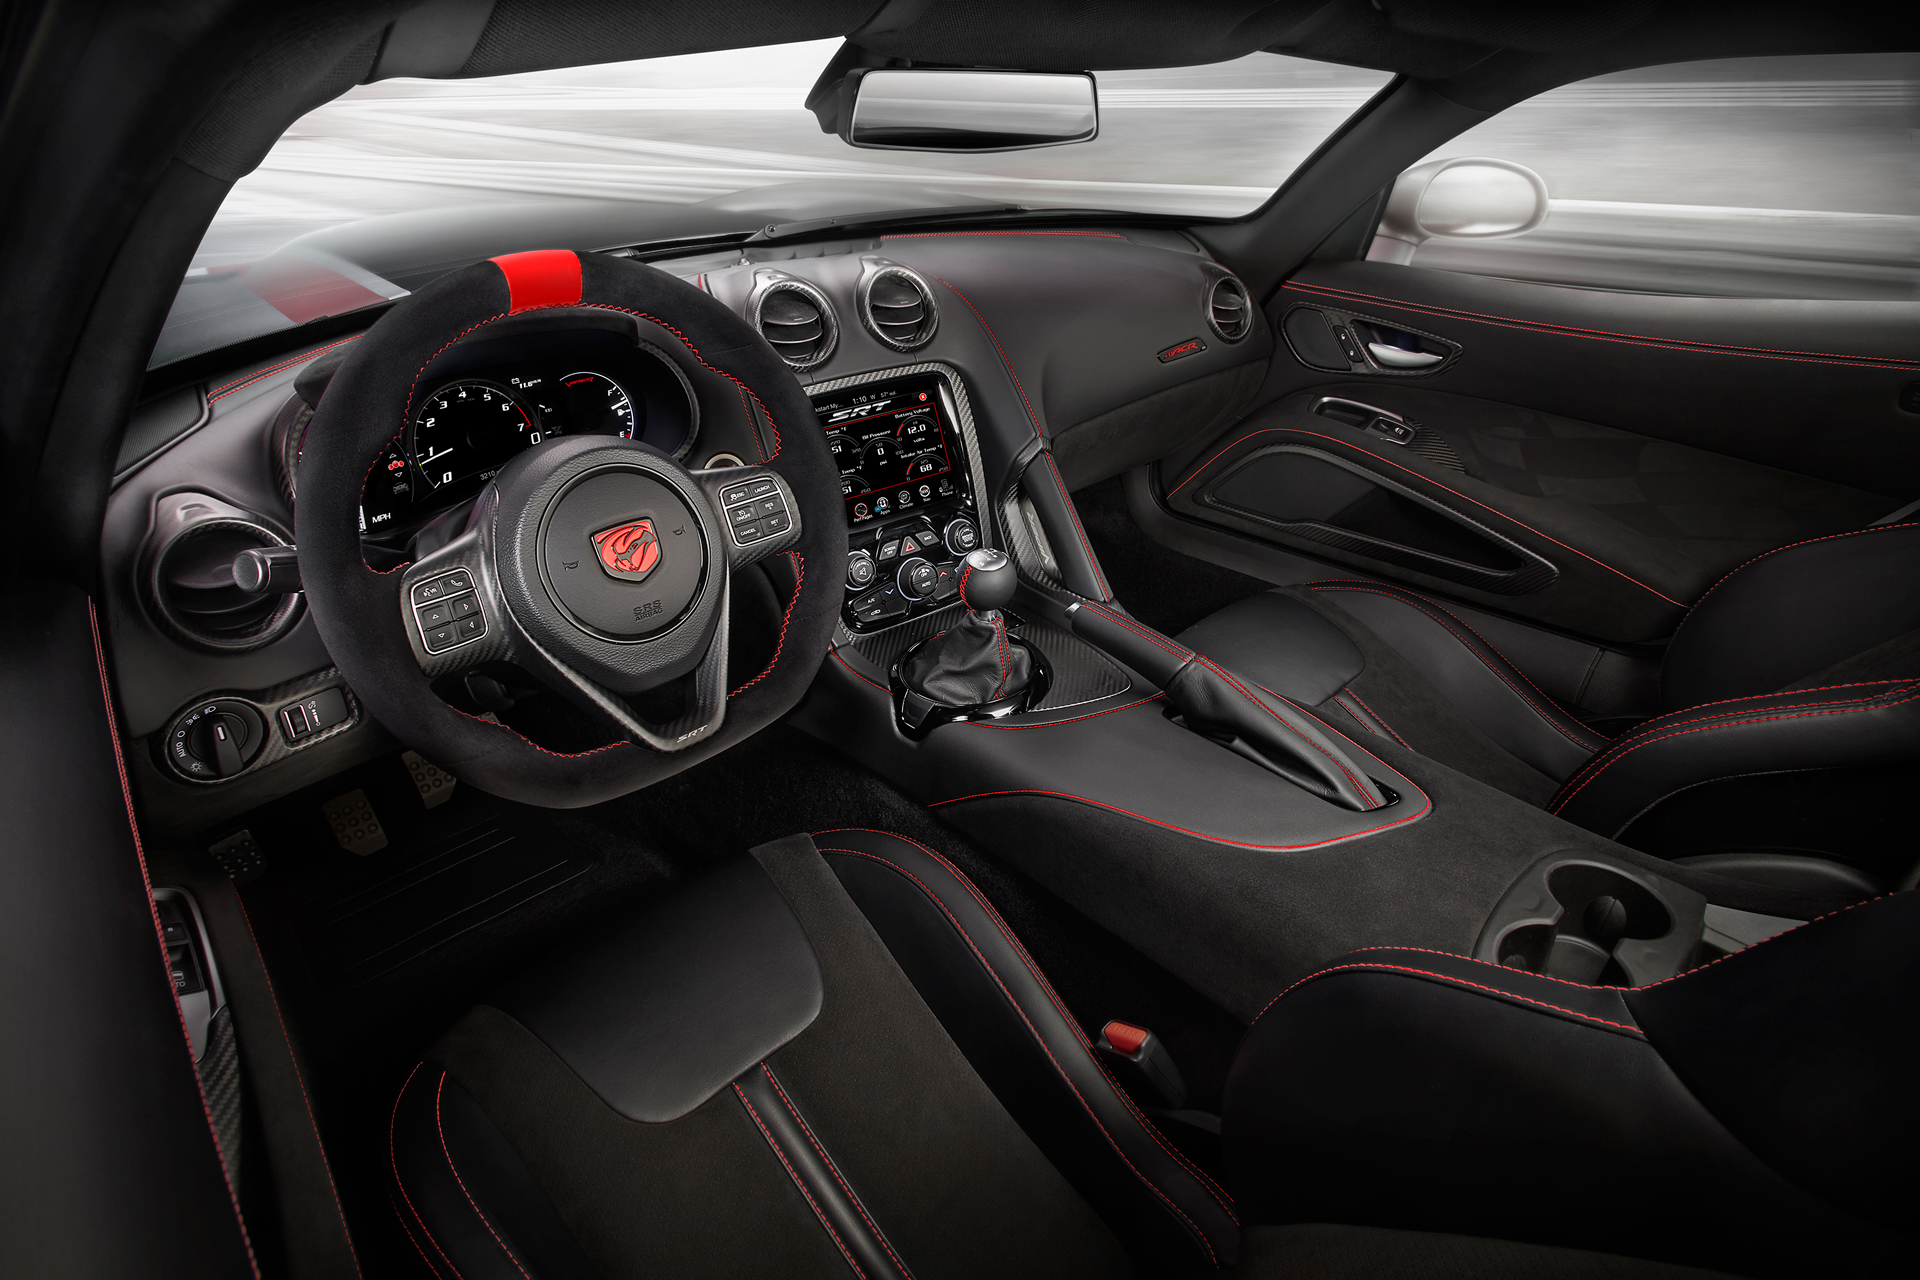 2016 Dodge Viper ACR - inside with racing whell / intérieur avec volant